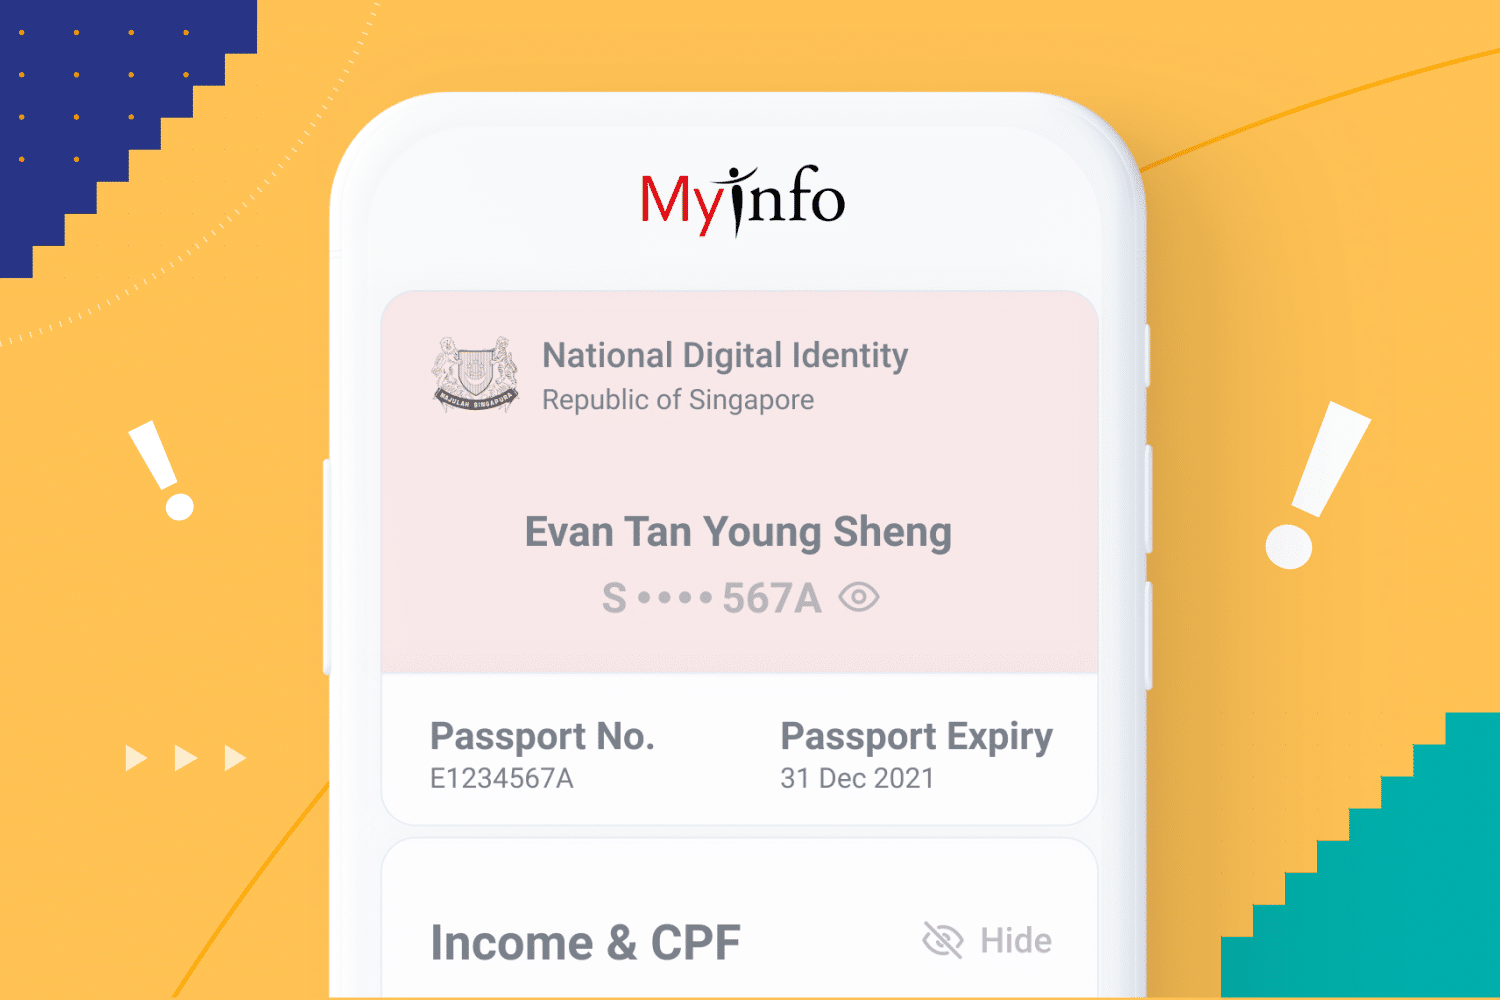 What You Should Know About Singapore's MyInfo Service